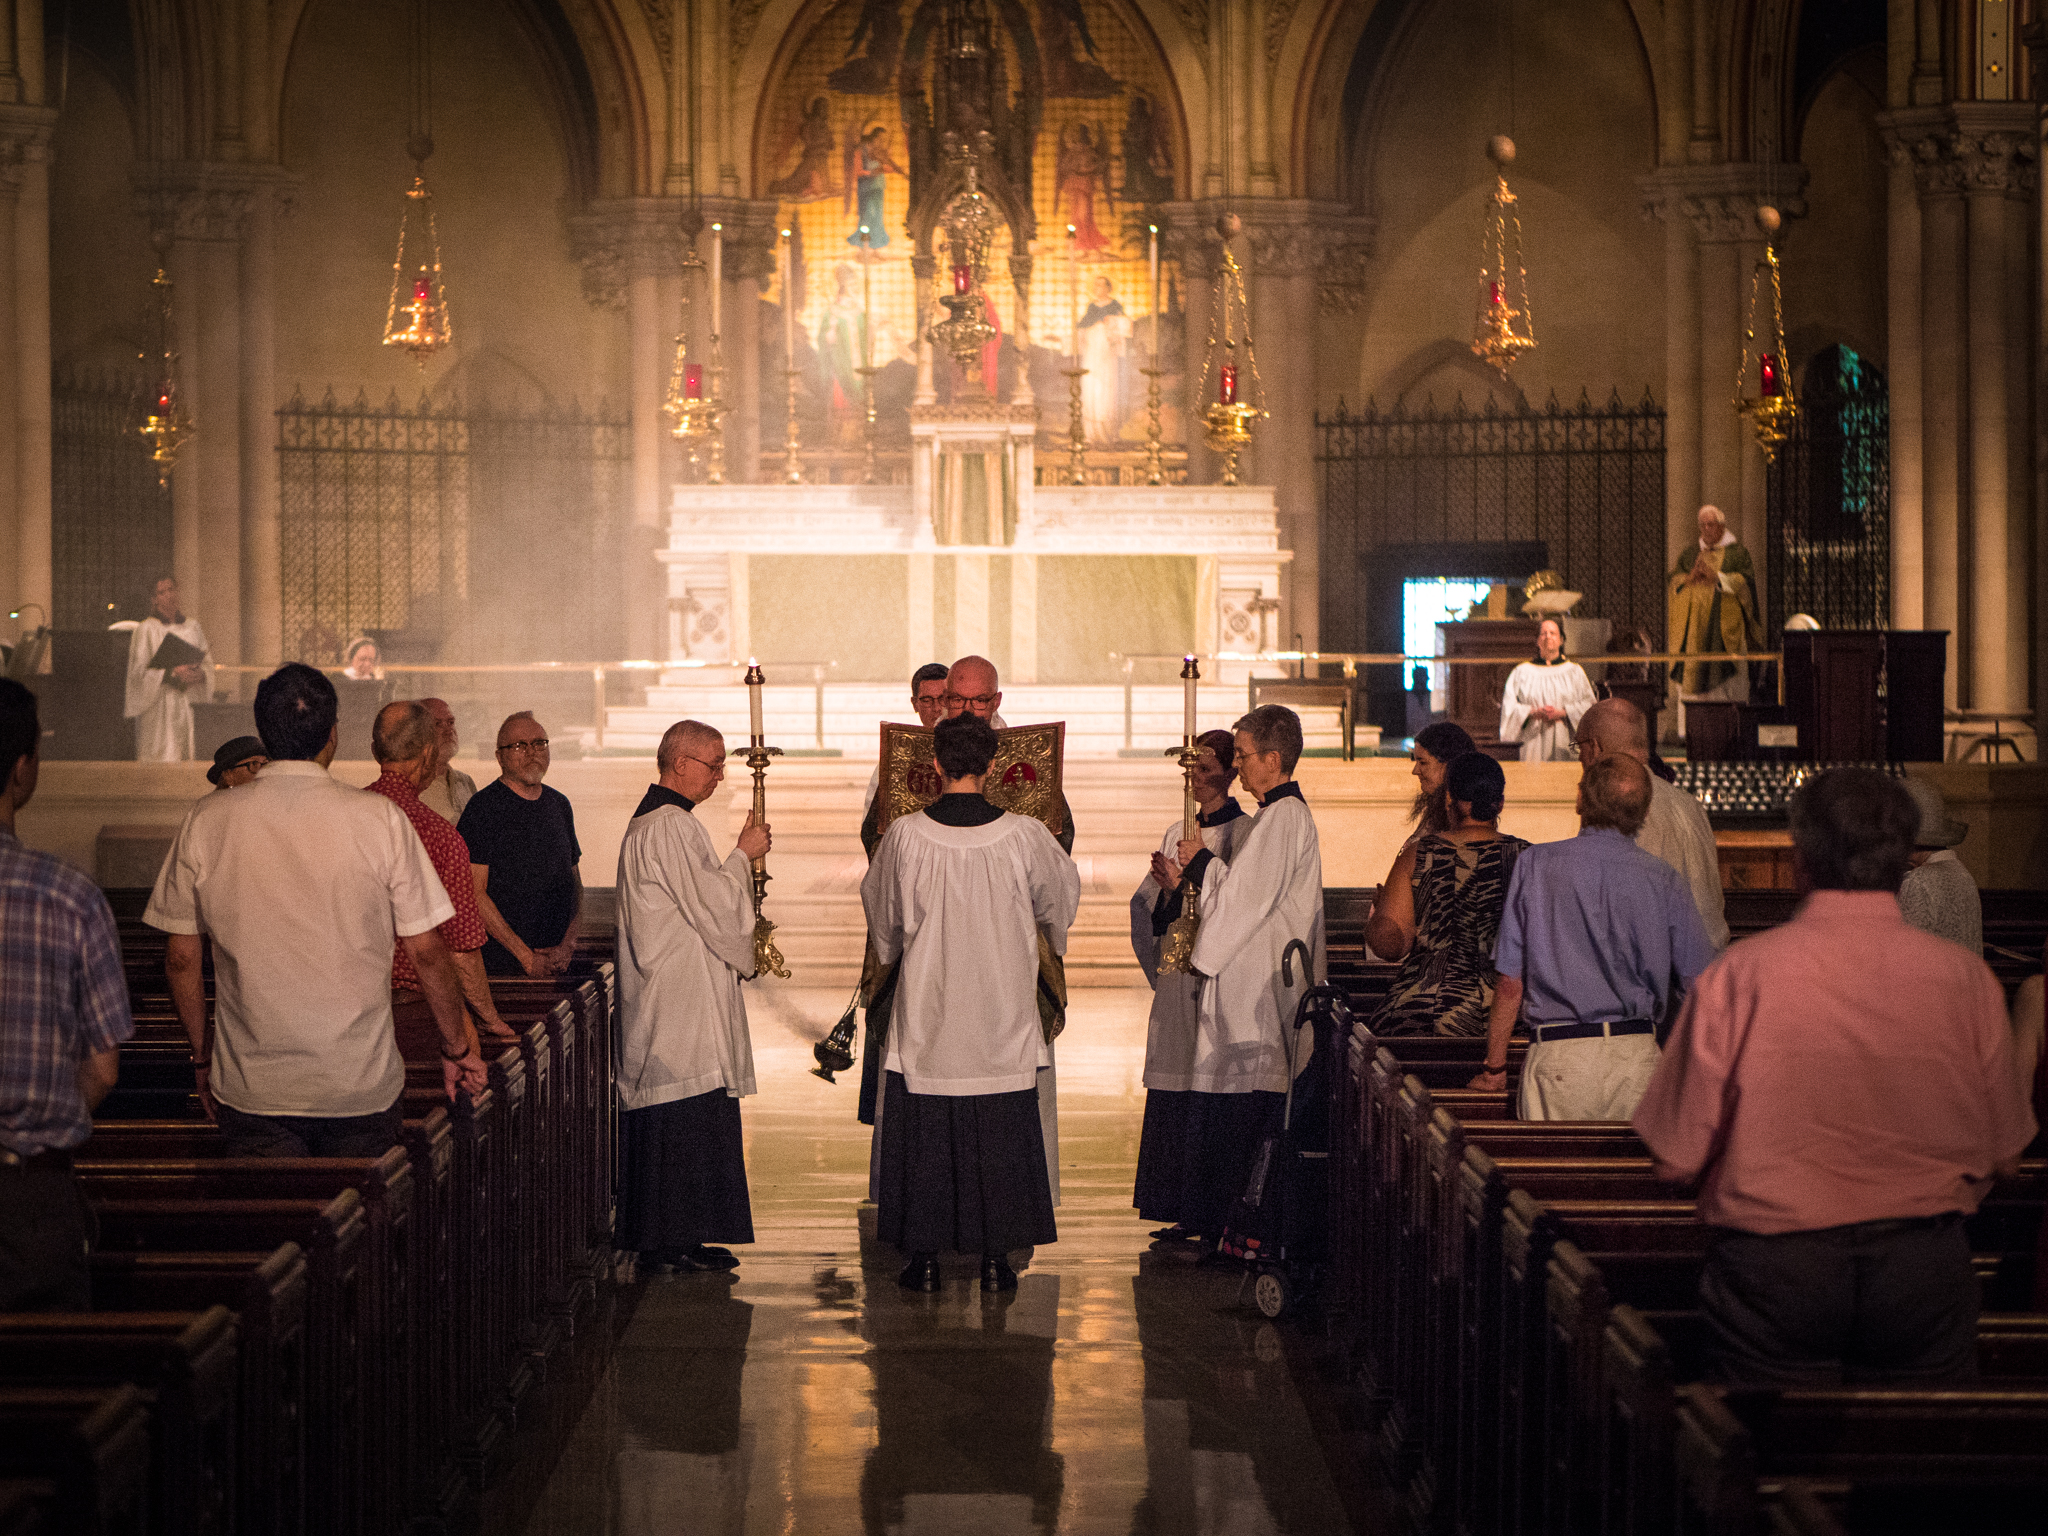 Incense is offered while the gospel is proclaimed.   Photo by Ricardo Gomez